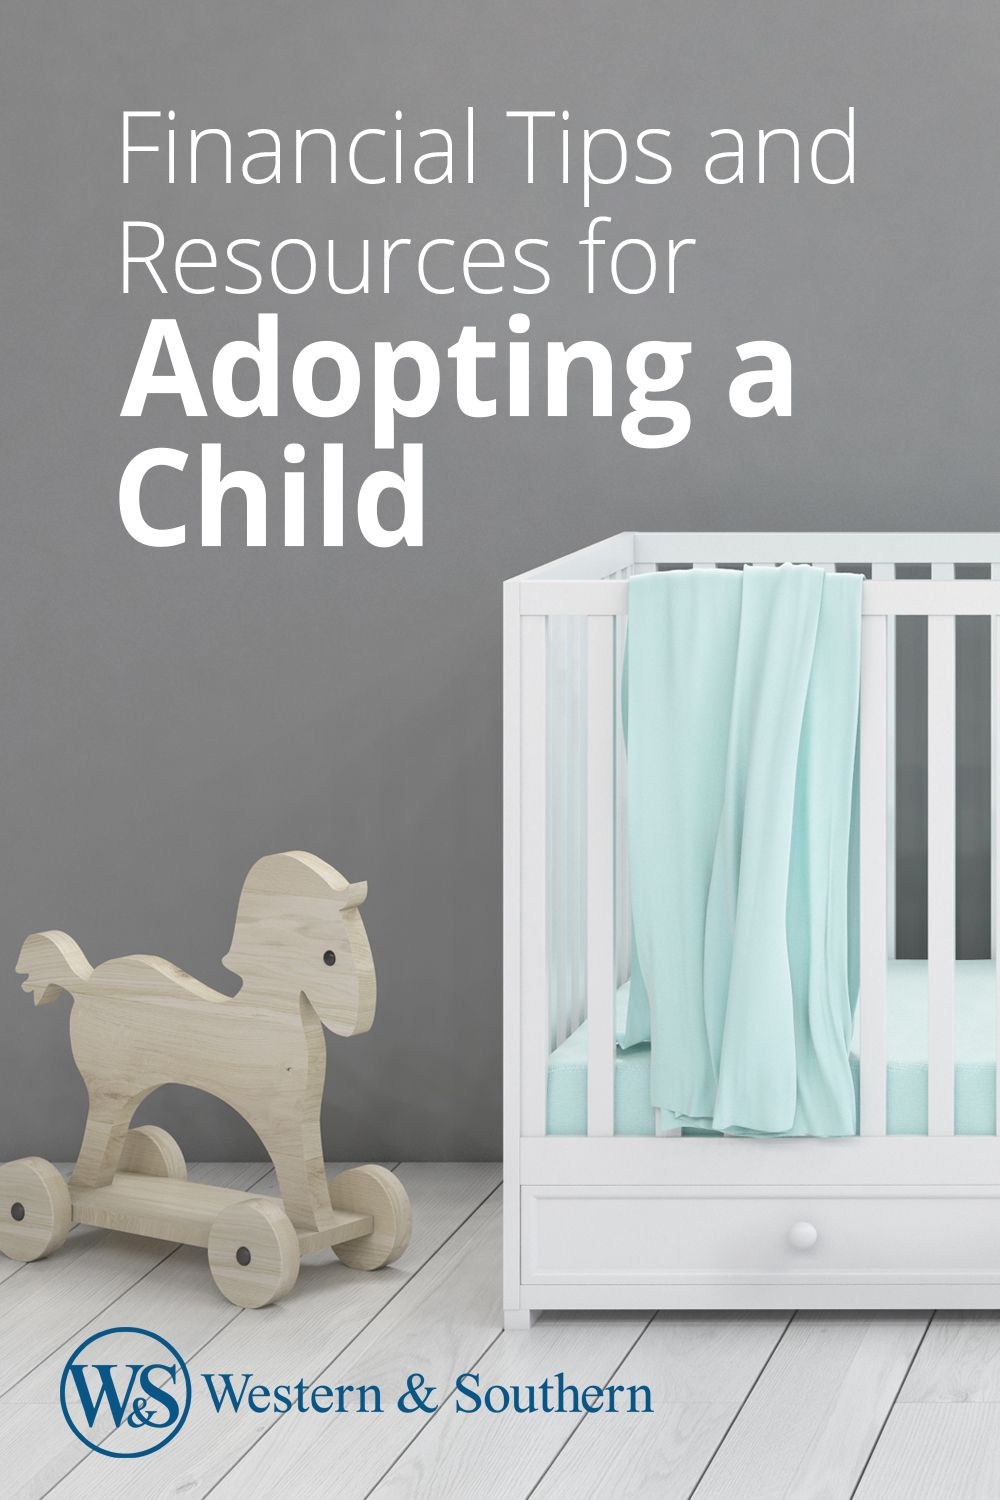 Adoption Tax Credit & Benefits for the Adoption Process